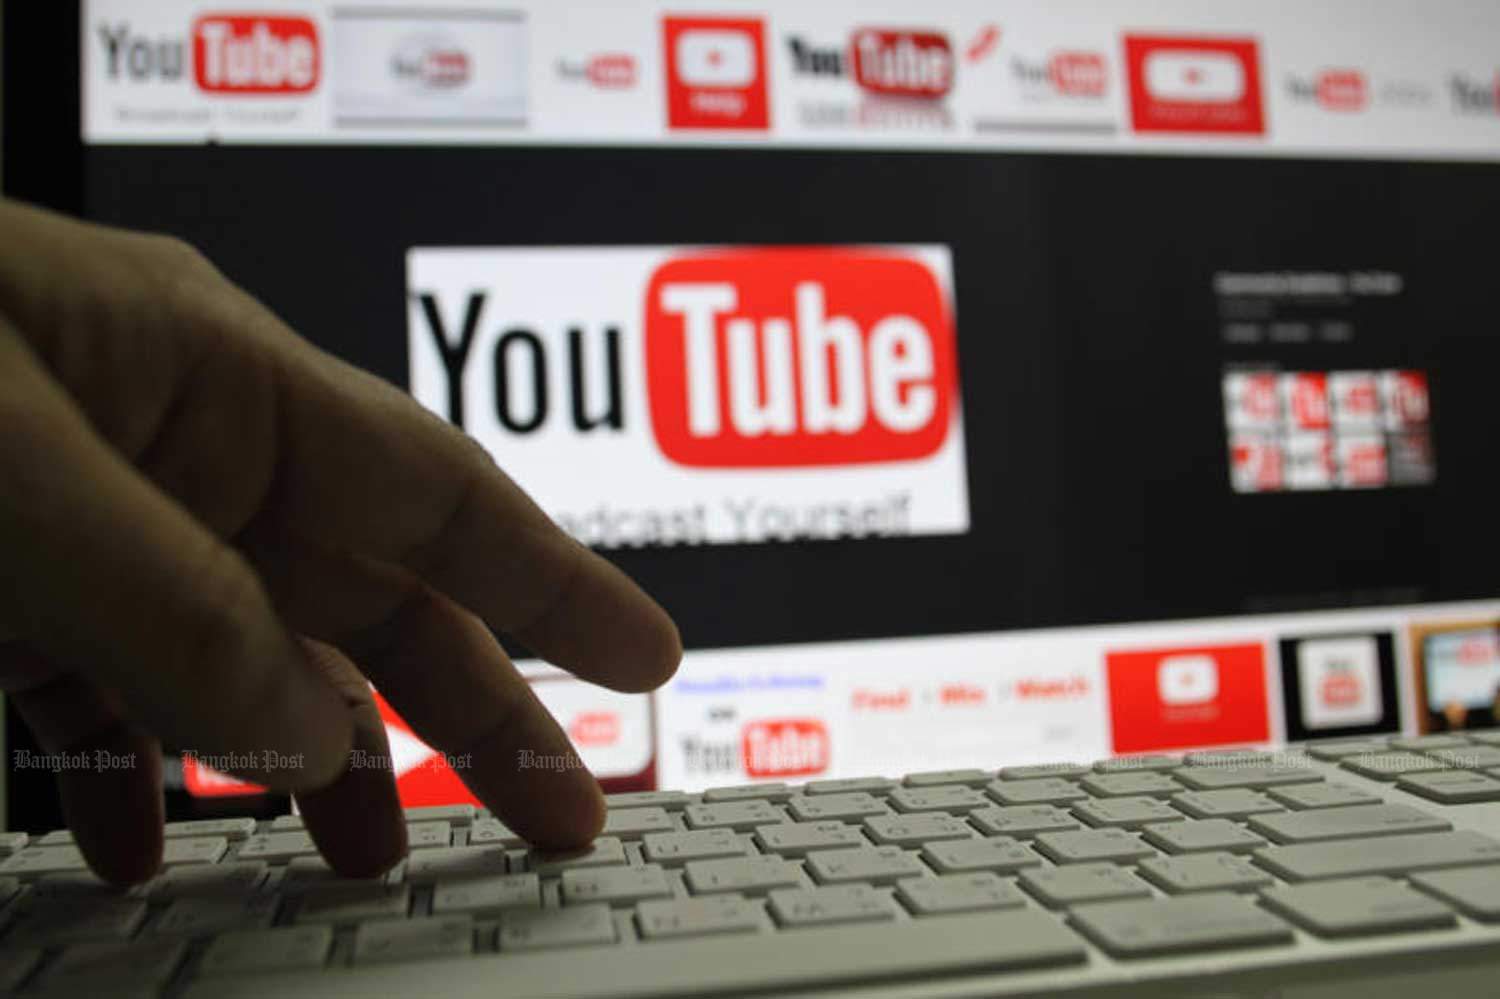 Over-the-top services like YouTube enable video streaming via the internet.(Photo by Pattanapong Hirunard)